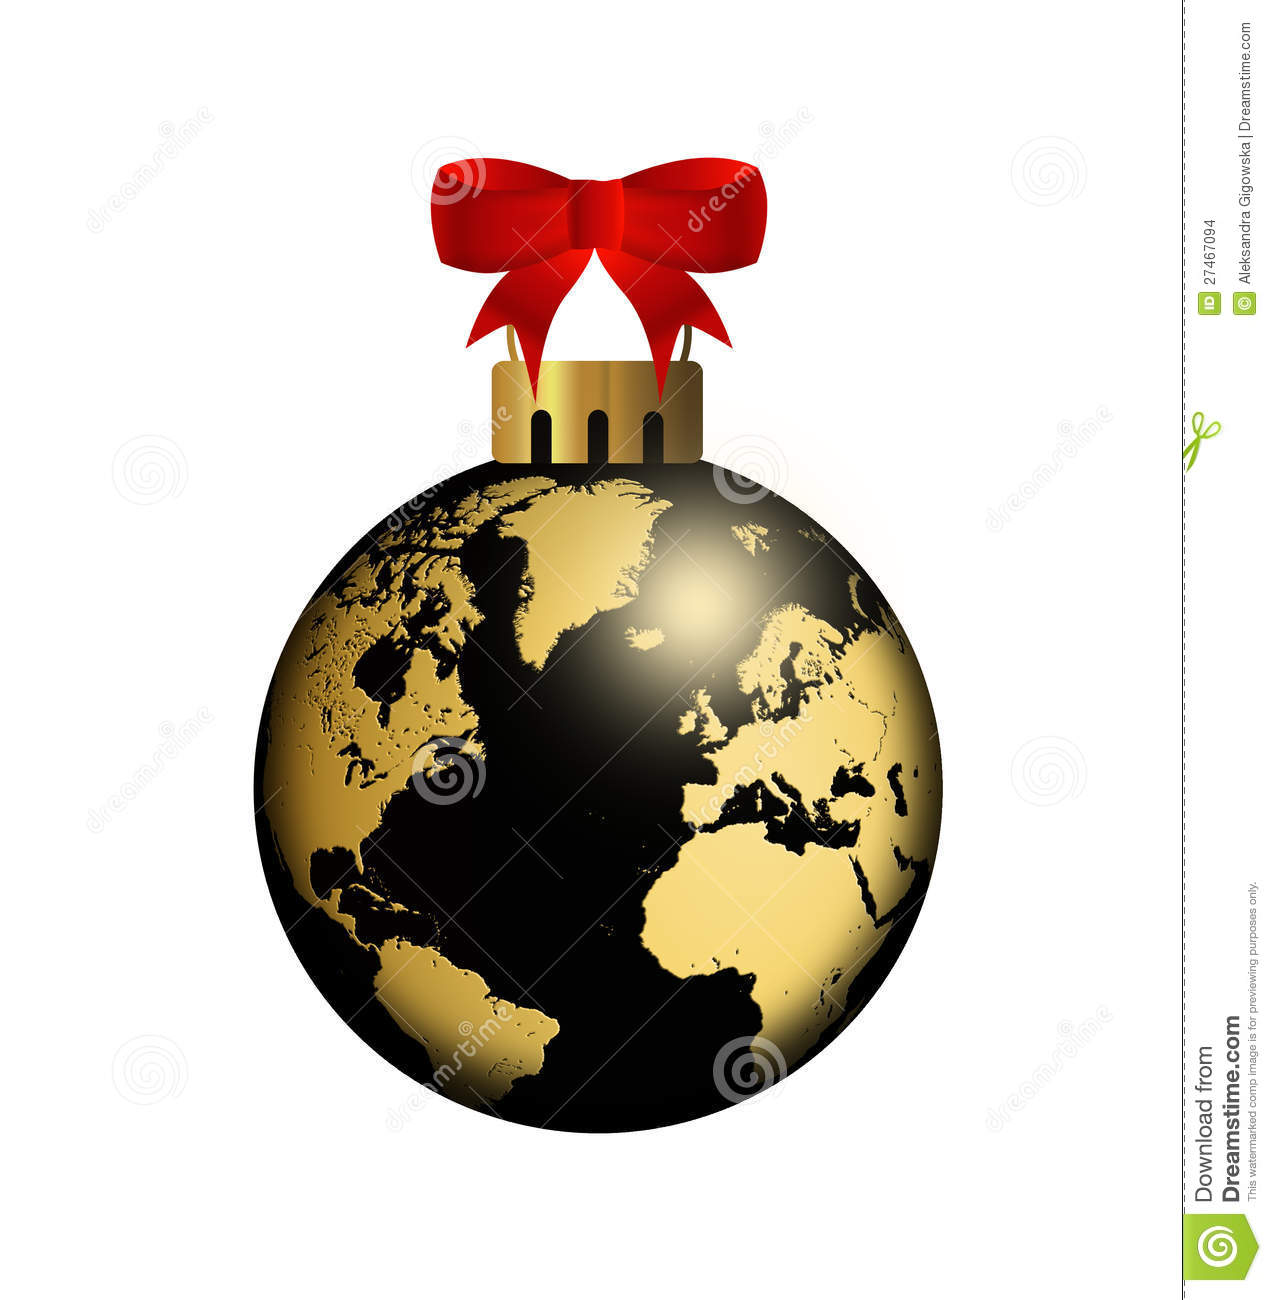 World globe christmas ornaments - Ball Christmas Design Globe Concept Illustration World